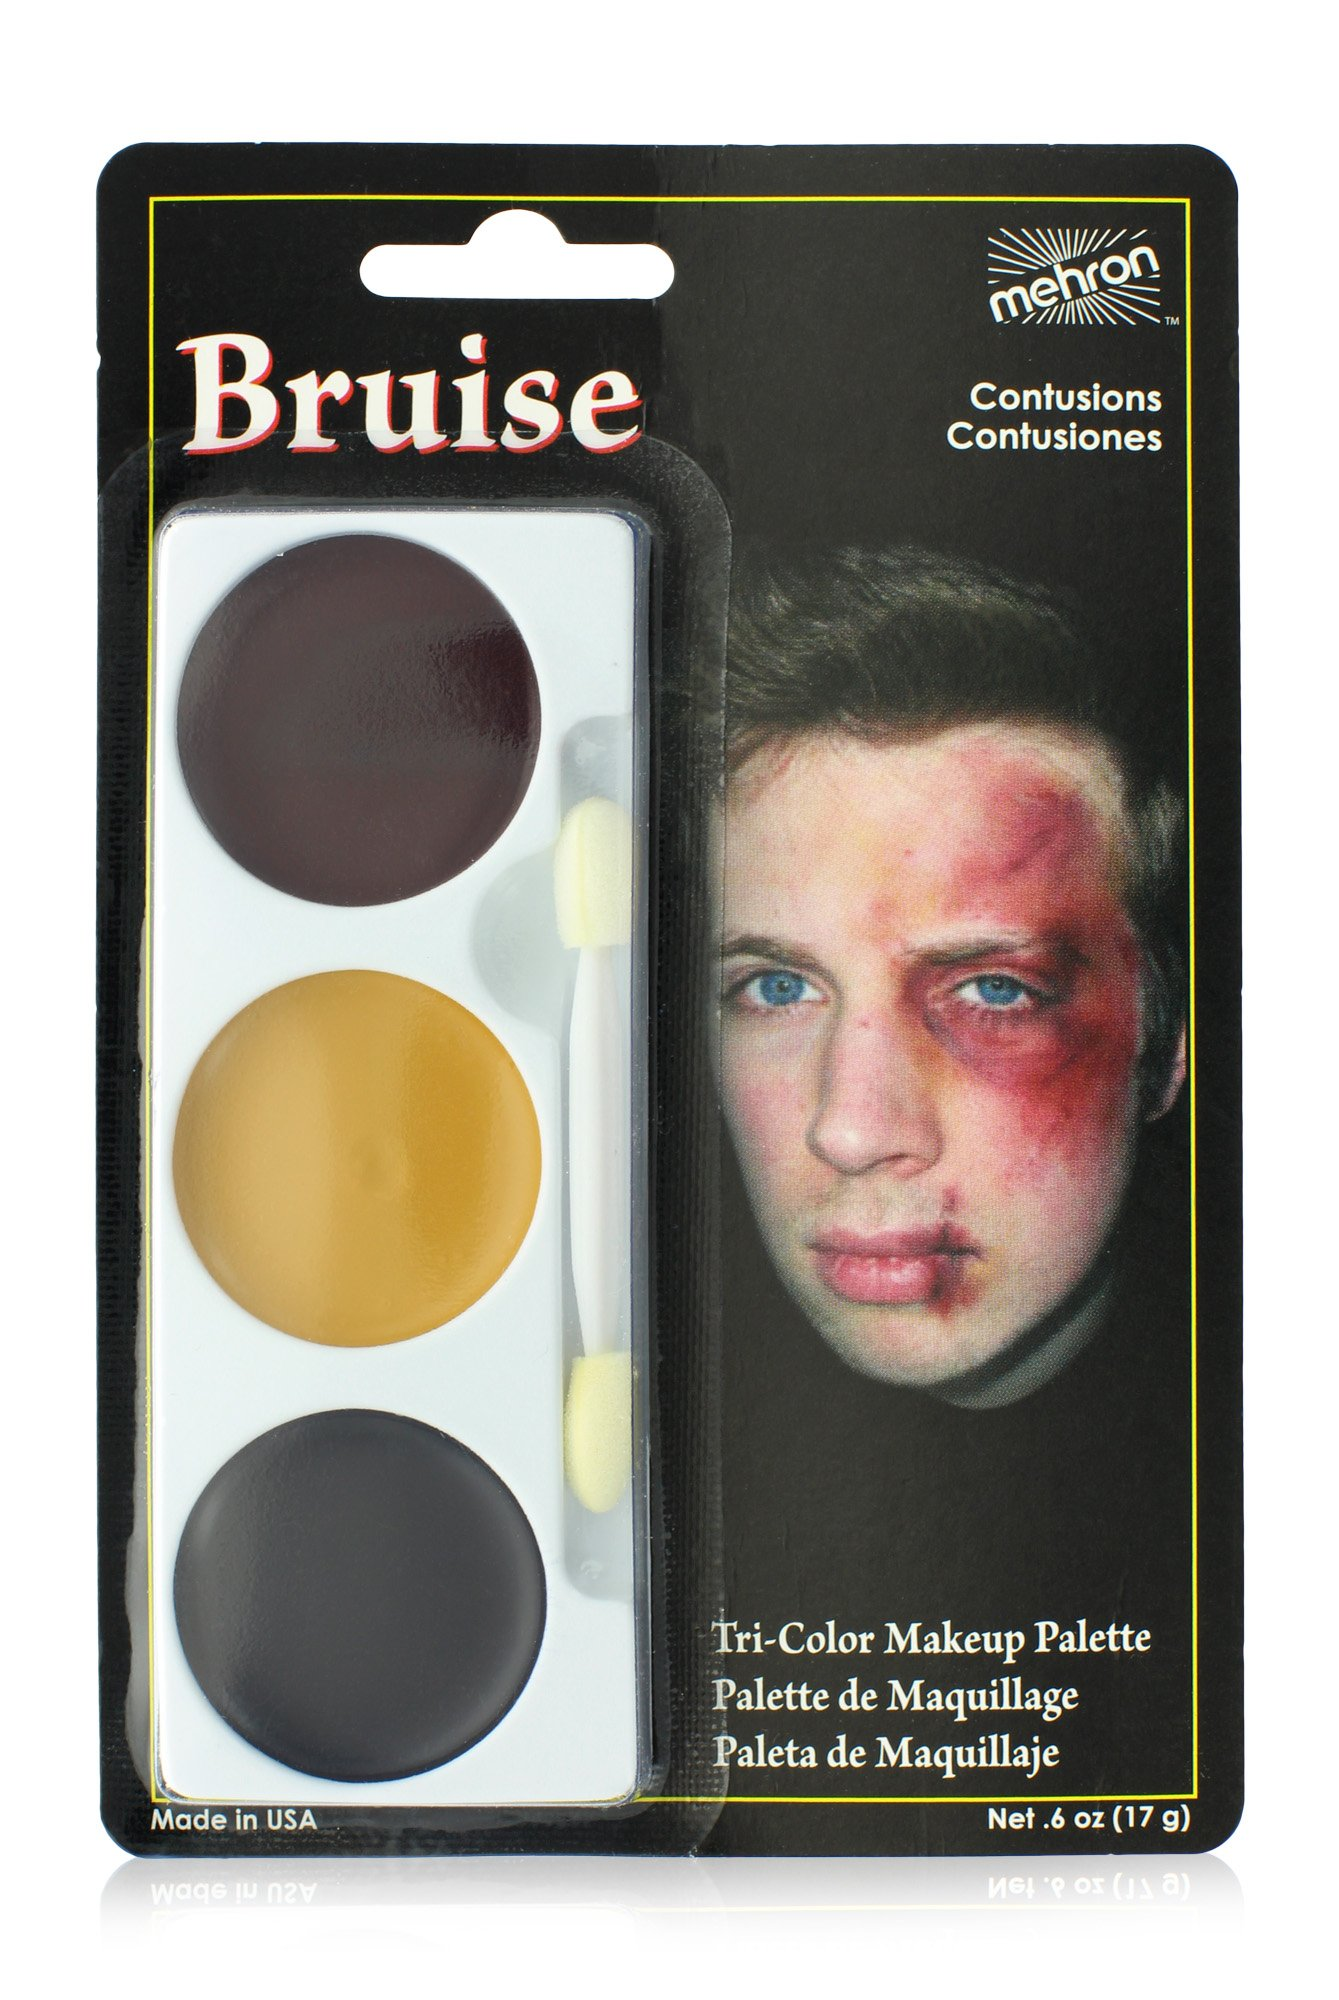 Mehron Makeup Tri-Color Halloween Makeup Palette (BRUISE)